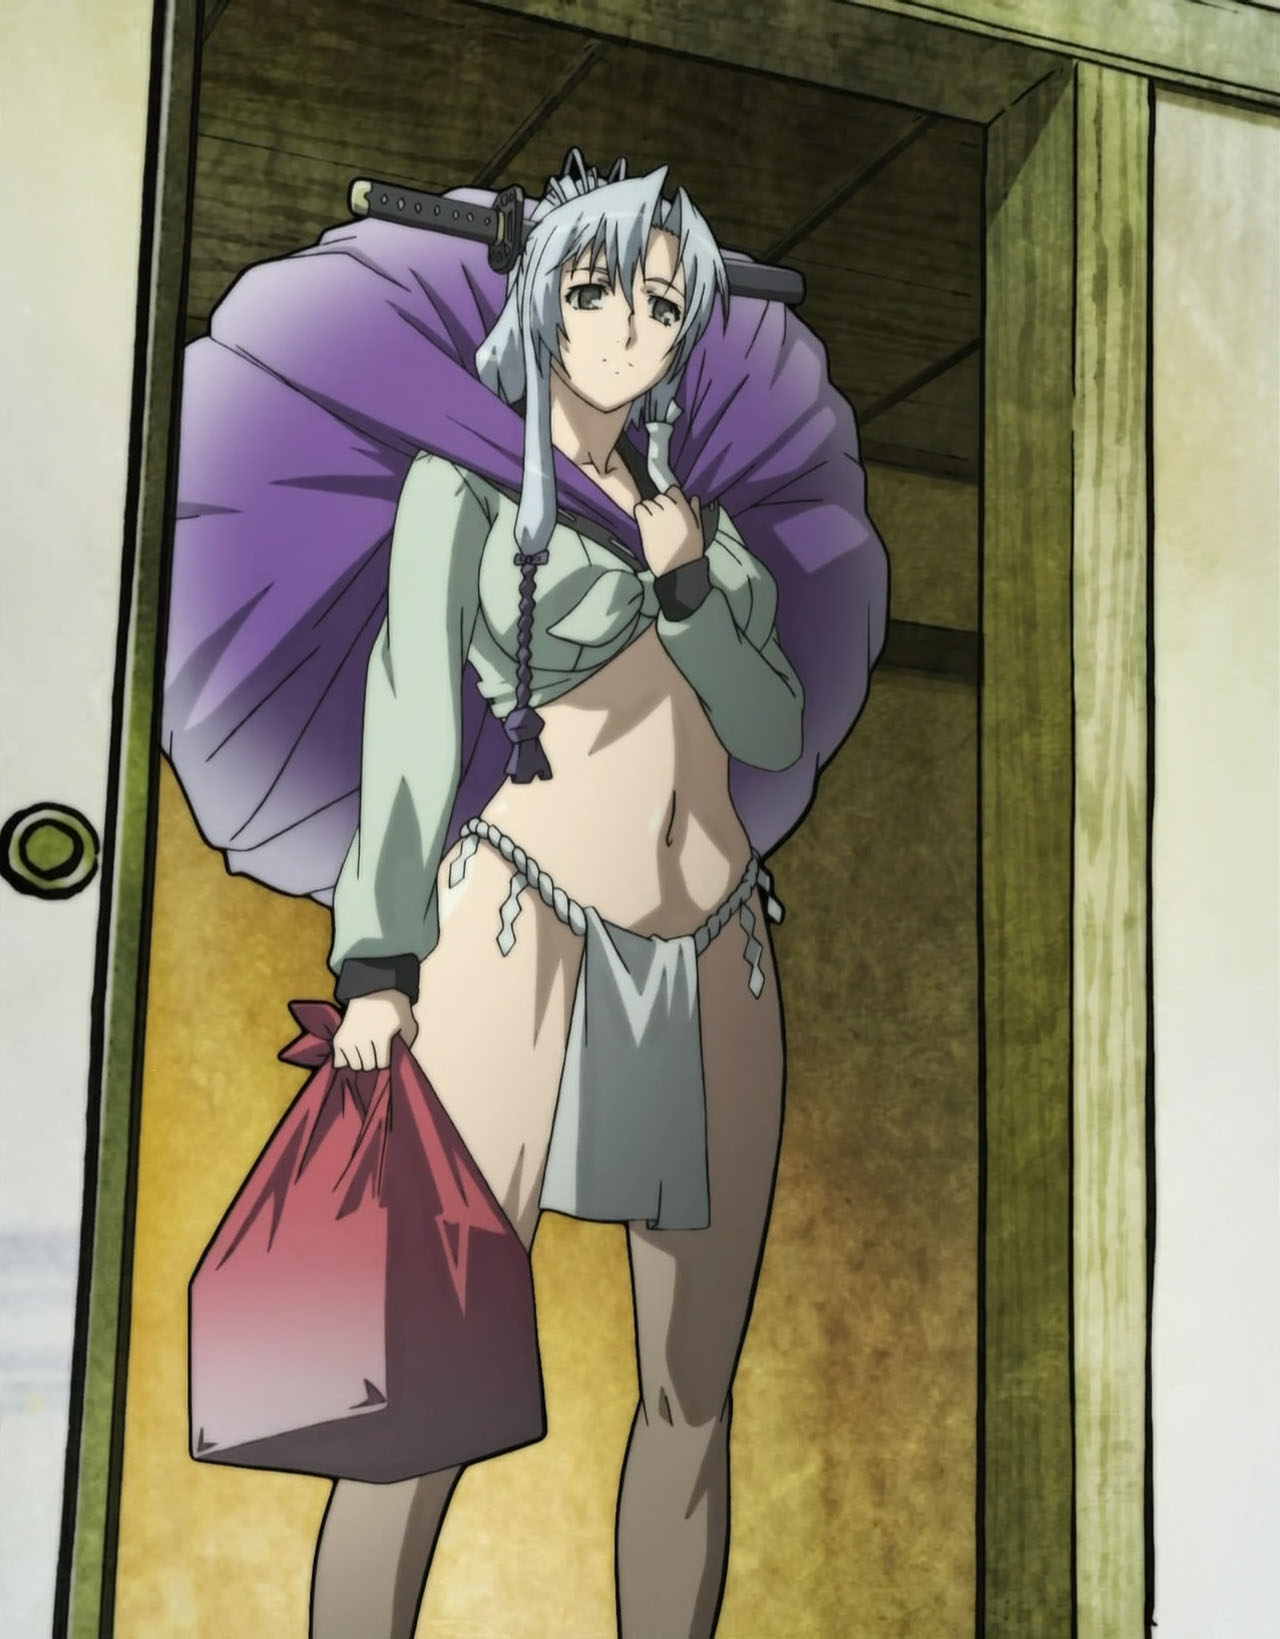 Adult archive Anime blue eyes girl